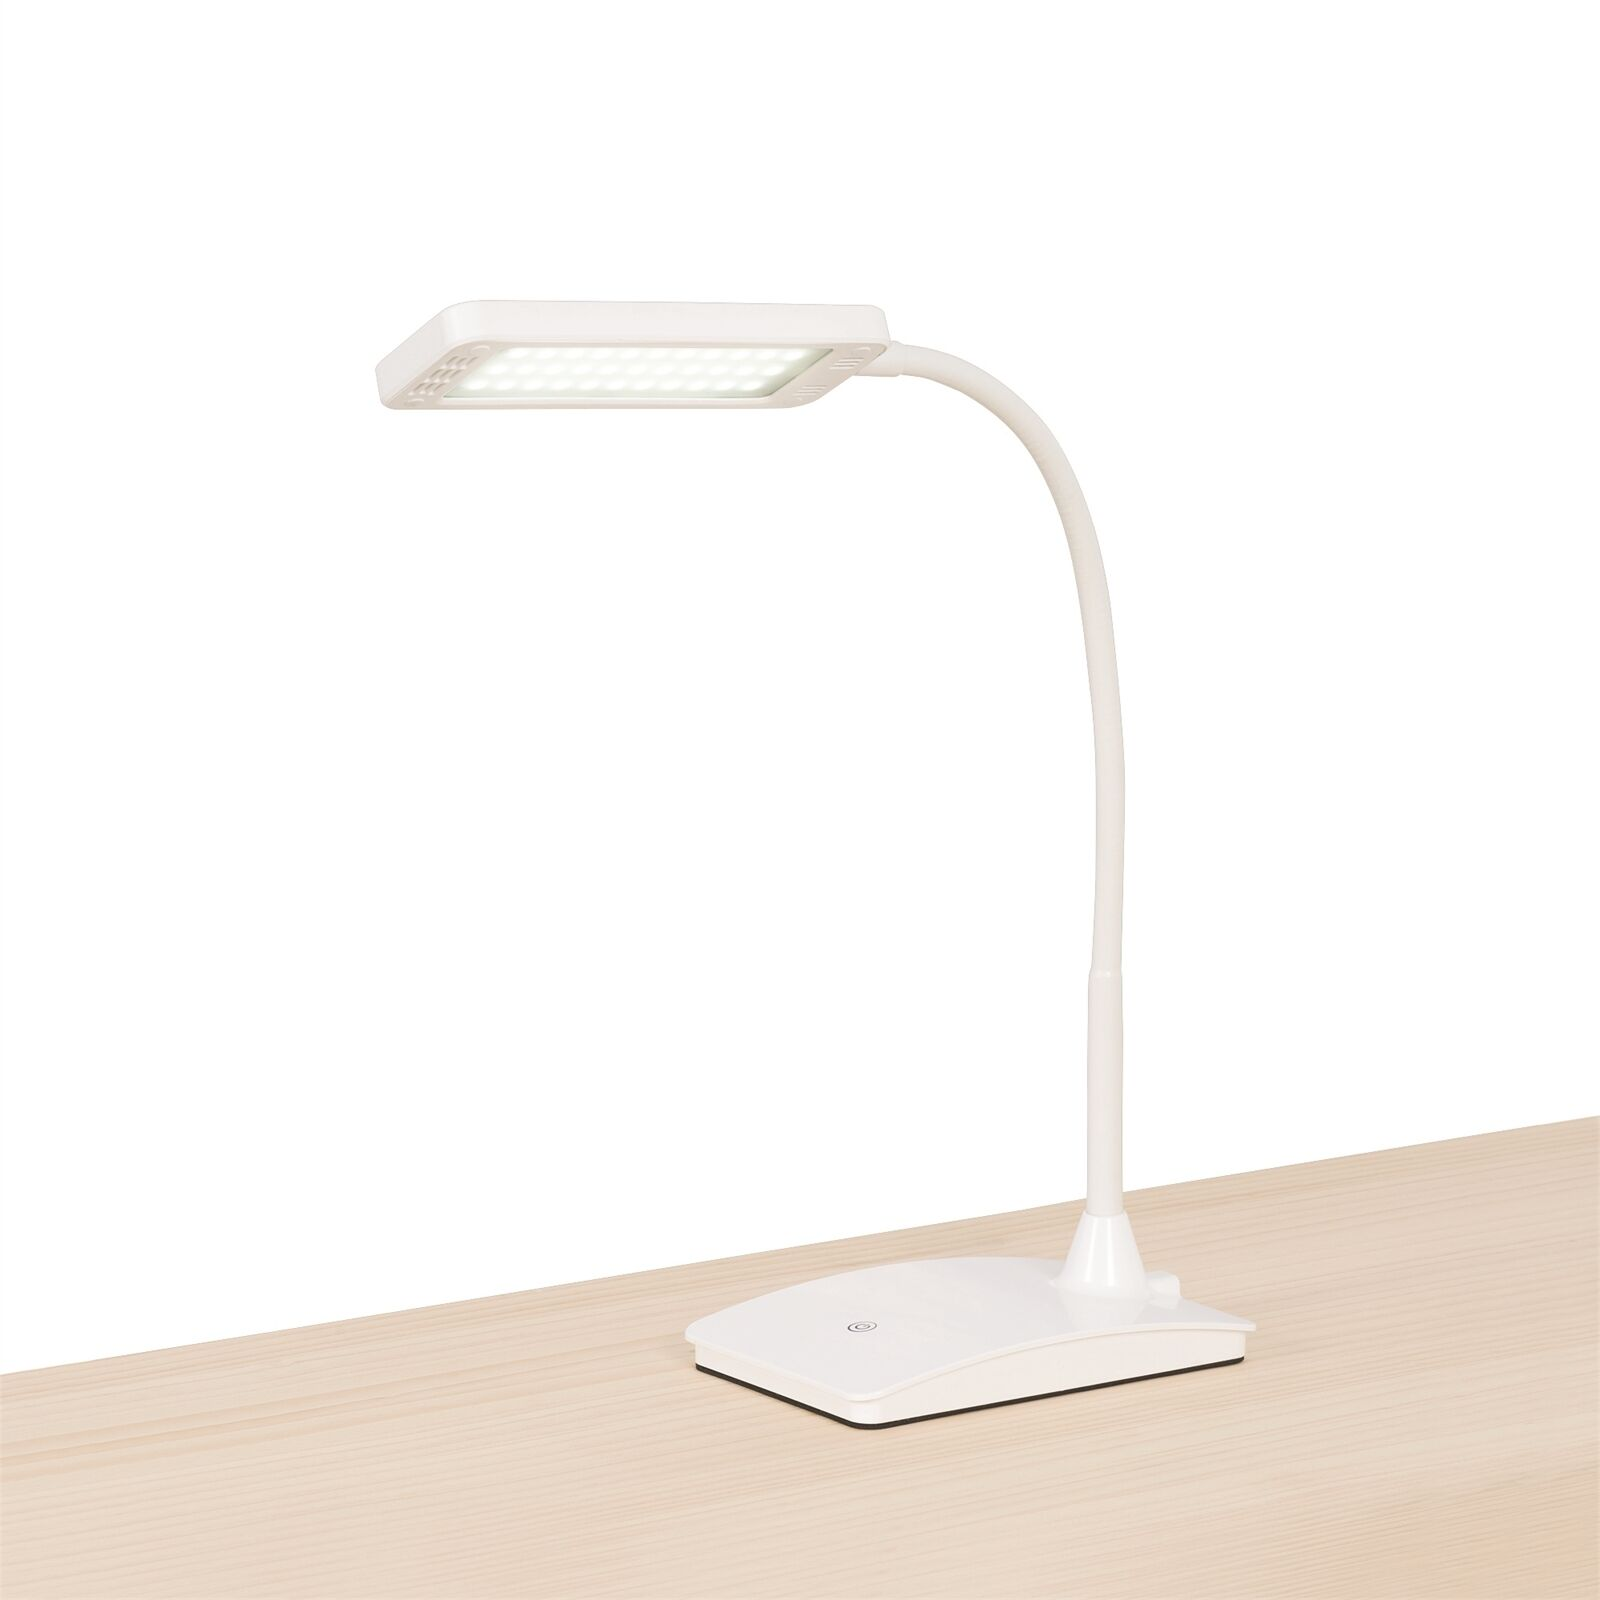 Verve Design AREN TOUCH LAMP 40cm 7W Integrated LED Brightness Control AUS Brand